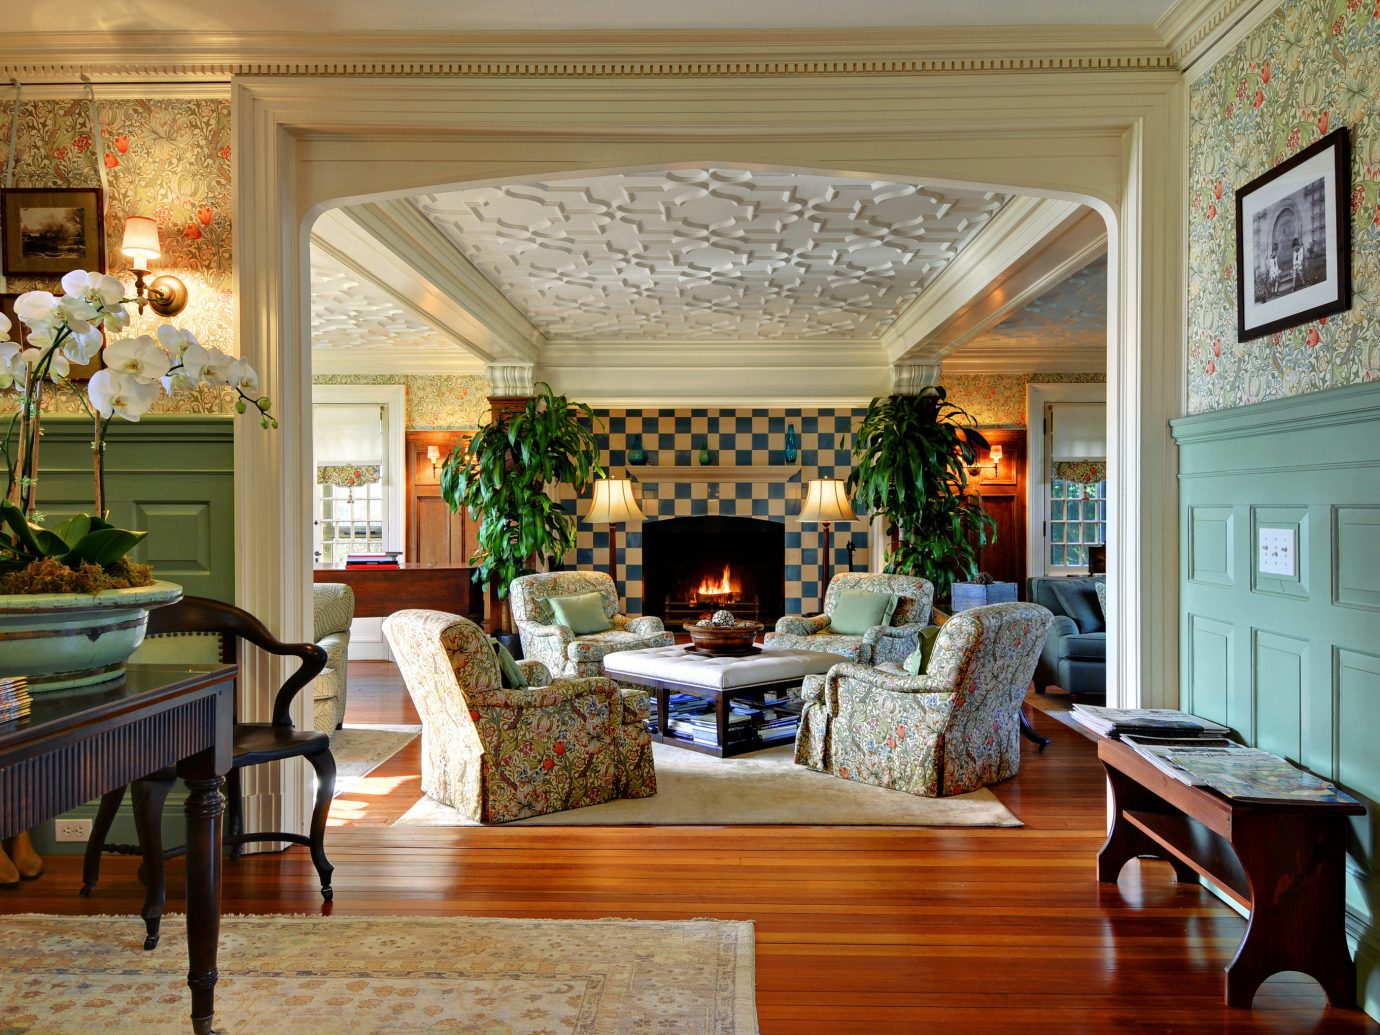 Beach South Fork The Hamptons indoor floor room Living dining room property living room chair estate window home ceiling interior design hardwood mansion real estate Dining Lobby Design furniture window covering farmhouse flooring area decorated